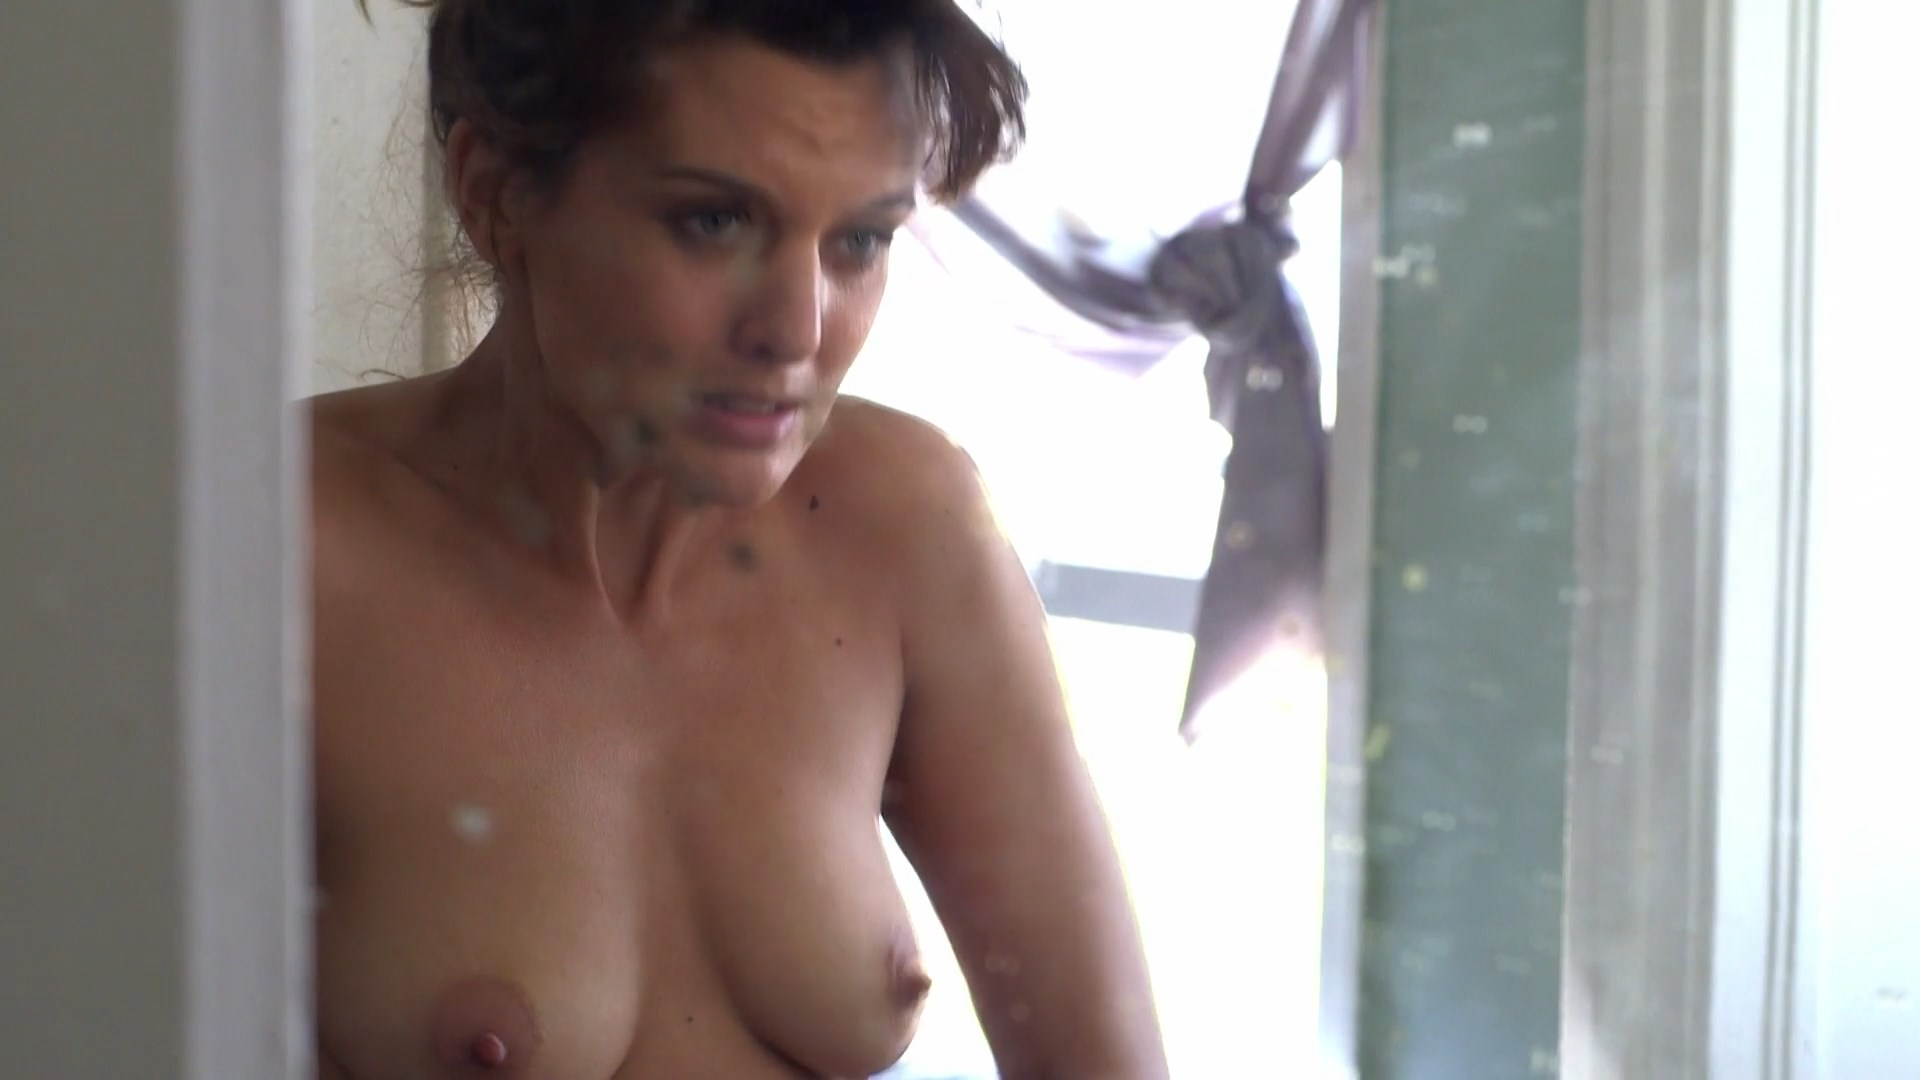 Are mistaken. lindsey shaw nude consider, that